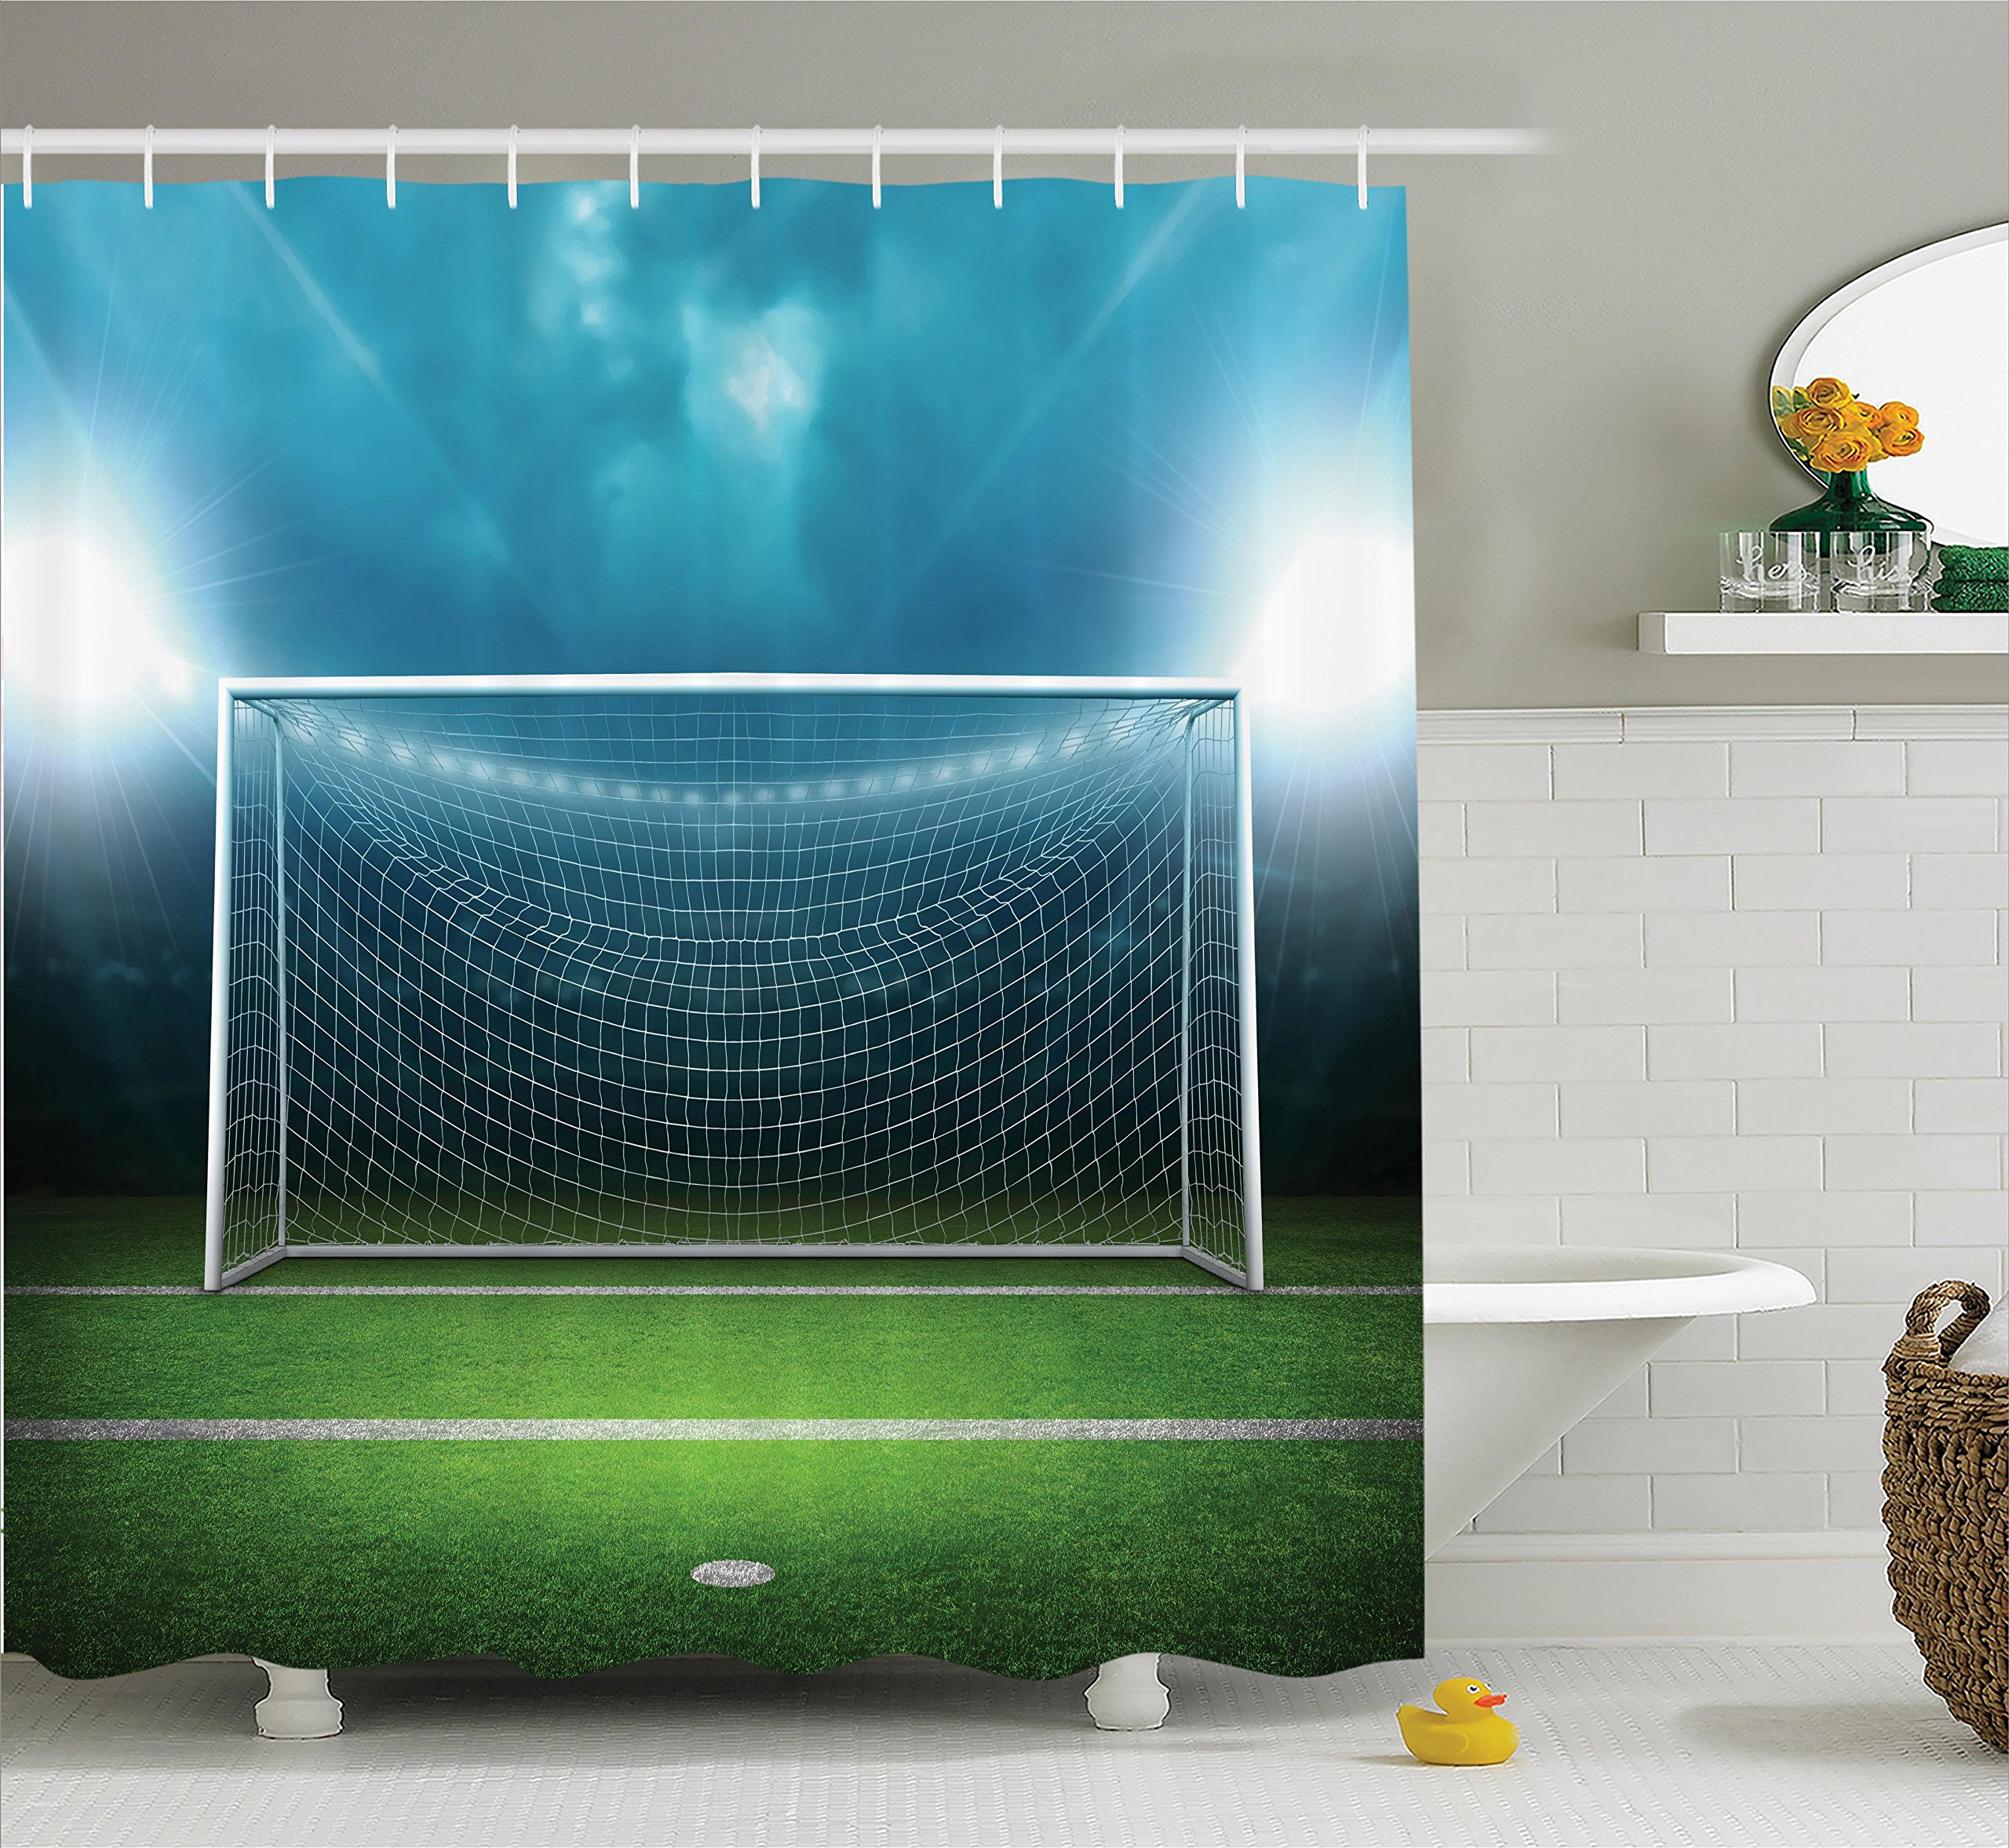 Ambesonne Sports Decor Shower Curtain Set, Soccer Goal Post Sports Area Winner Loser Line Floodlit Best Team Finals Game Gym Theme, Bathroom Accessories, 69W X 70L inches, Green Blue